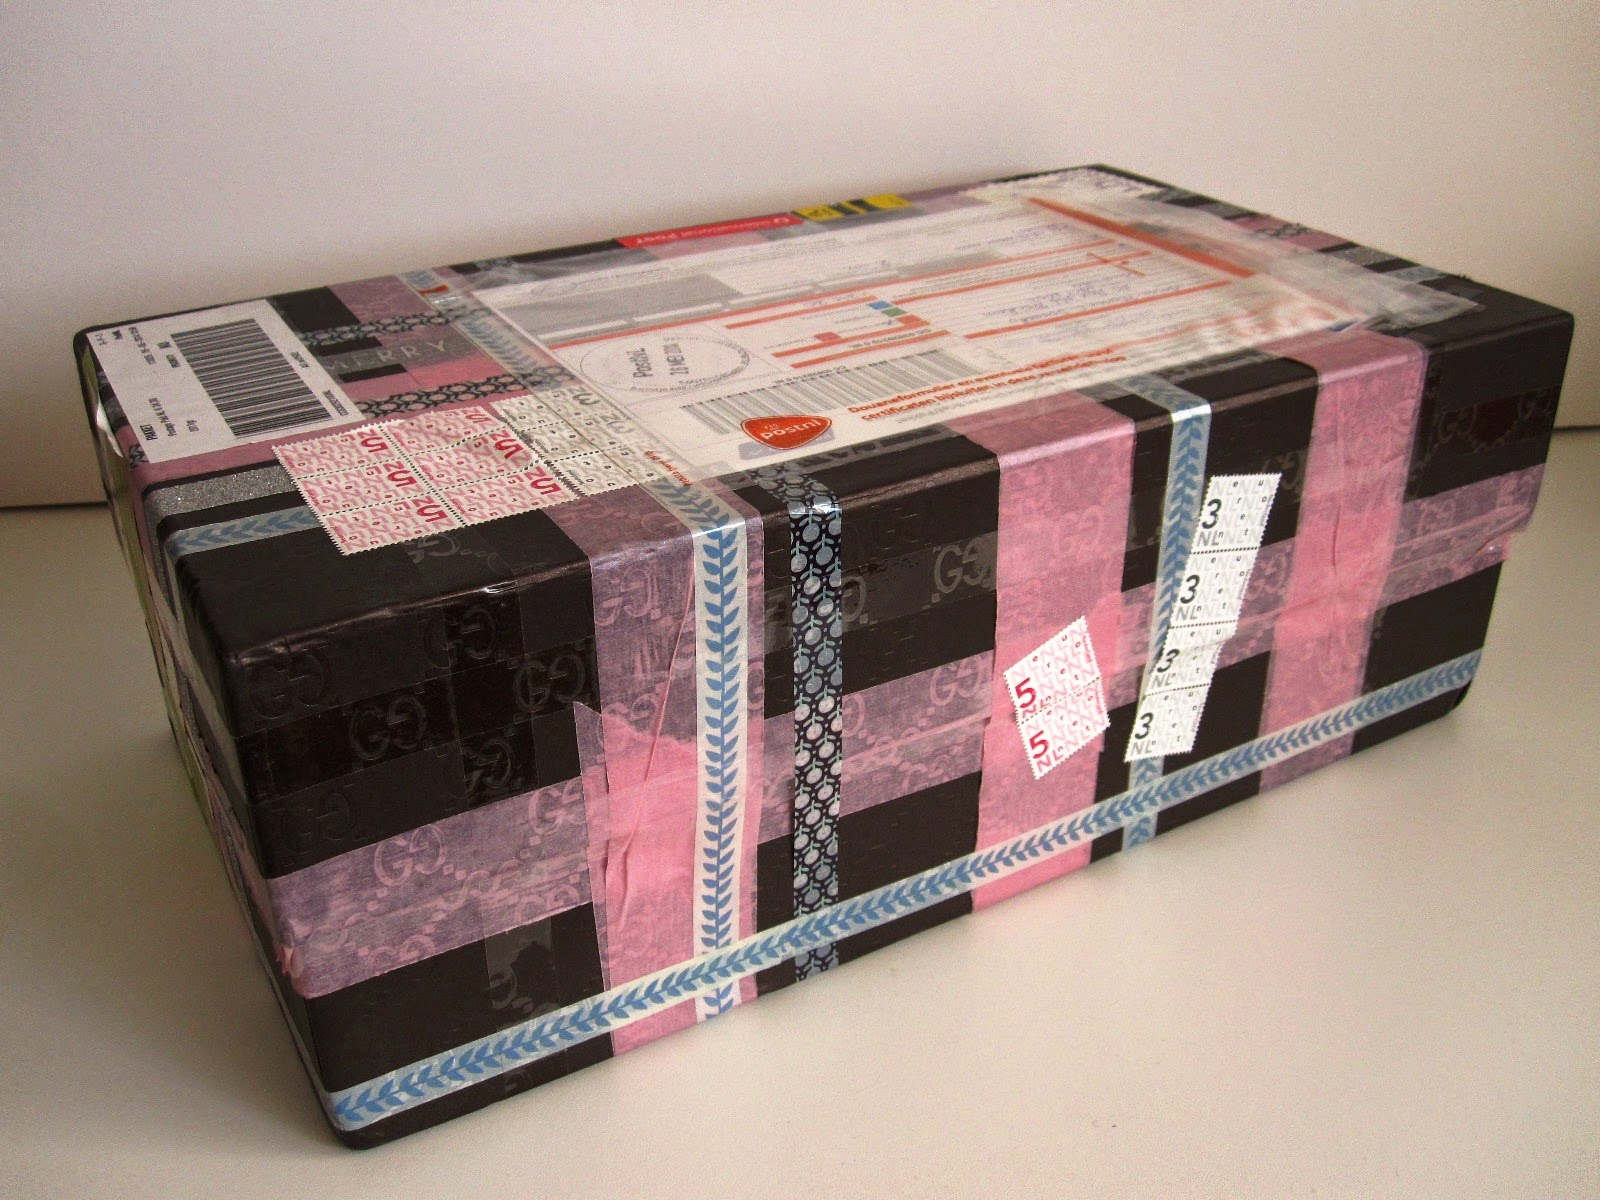 Large shoe box, wrapped with various washi tapes.There are postal sticker on the top of it.